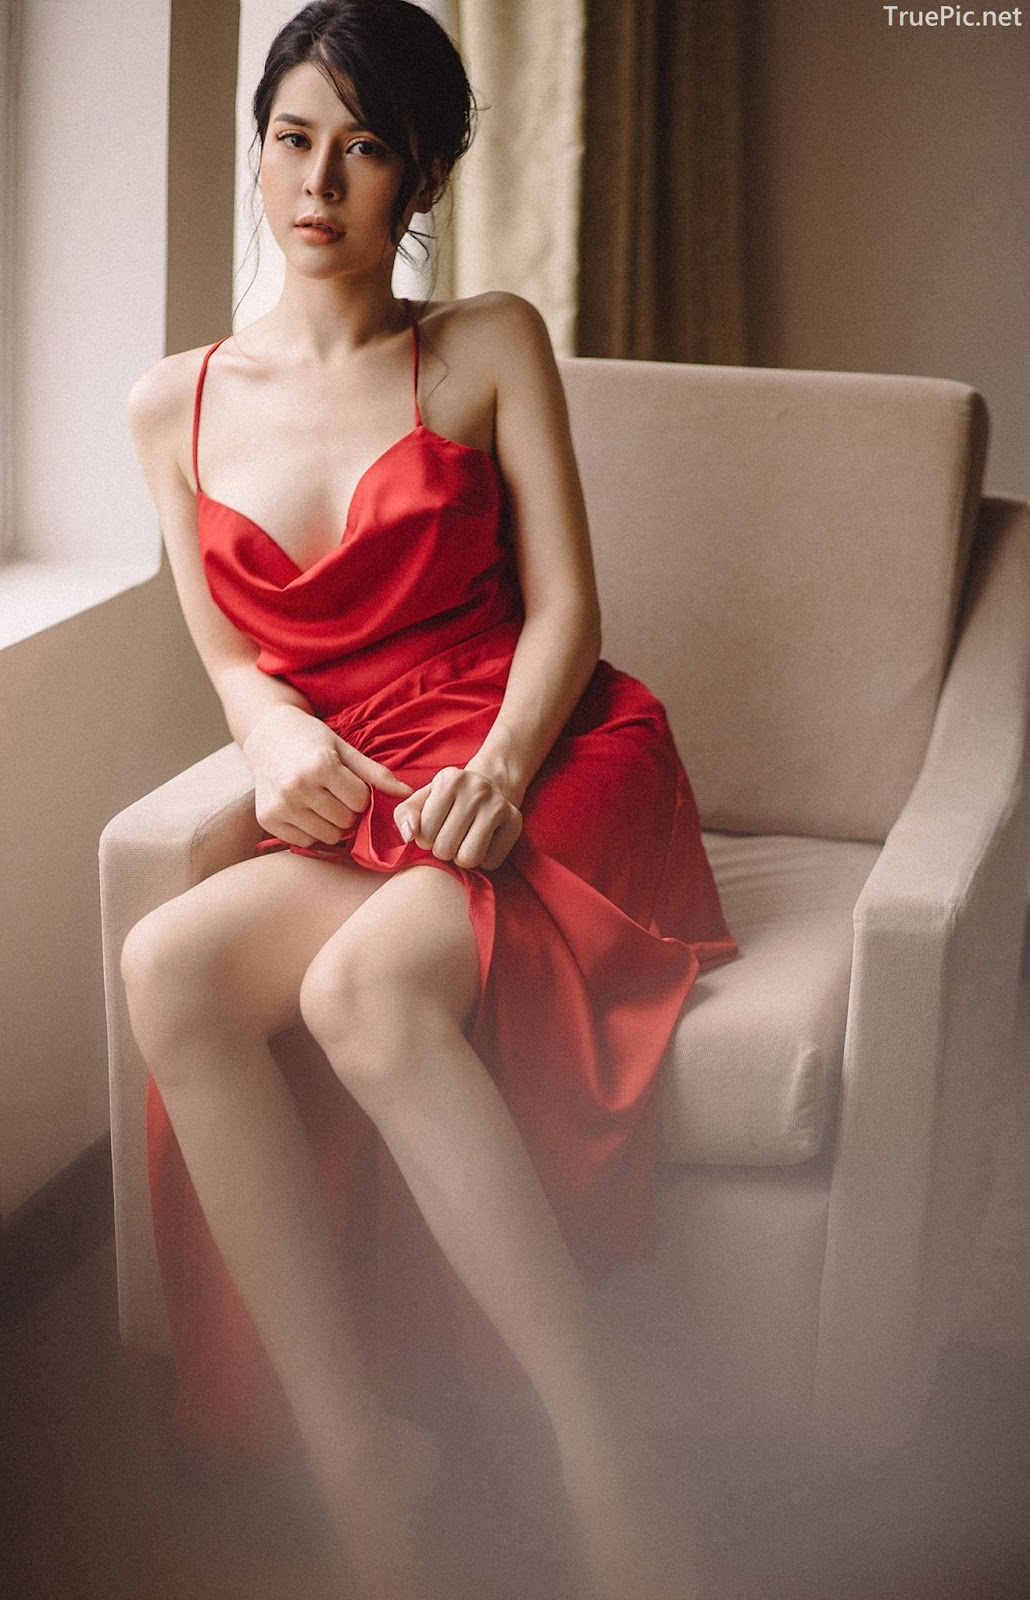 Vietnamese hot model - The beauty of Women with Red Camisole Dress - Photo by Linh Phan - Picture 2